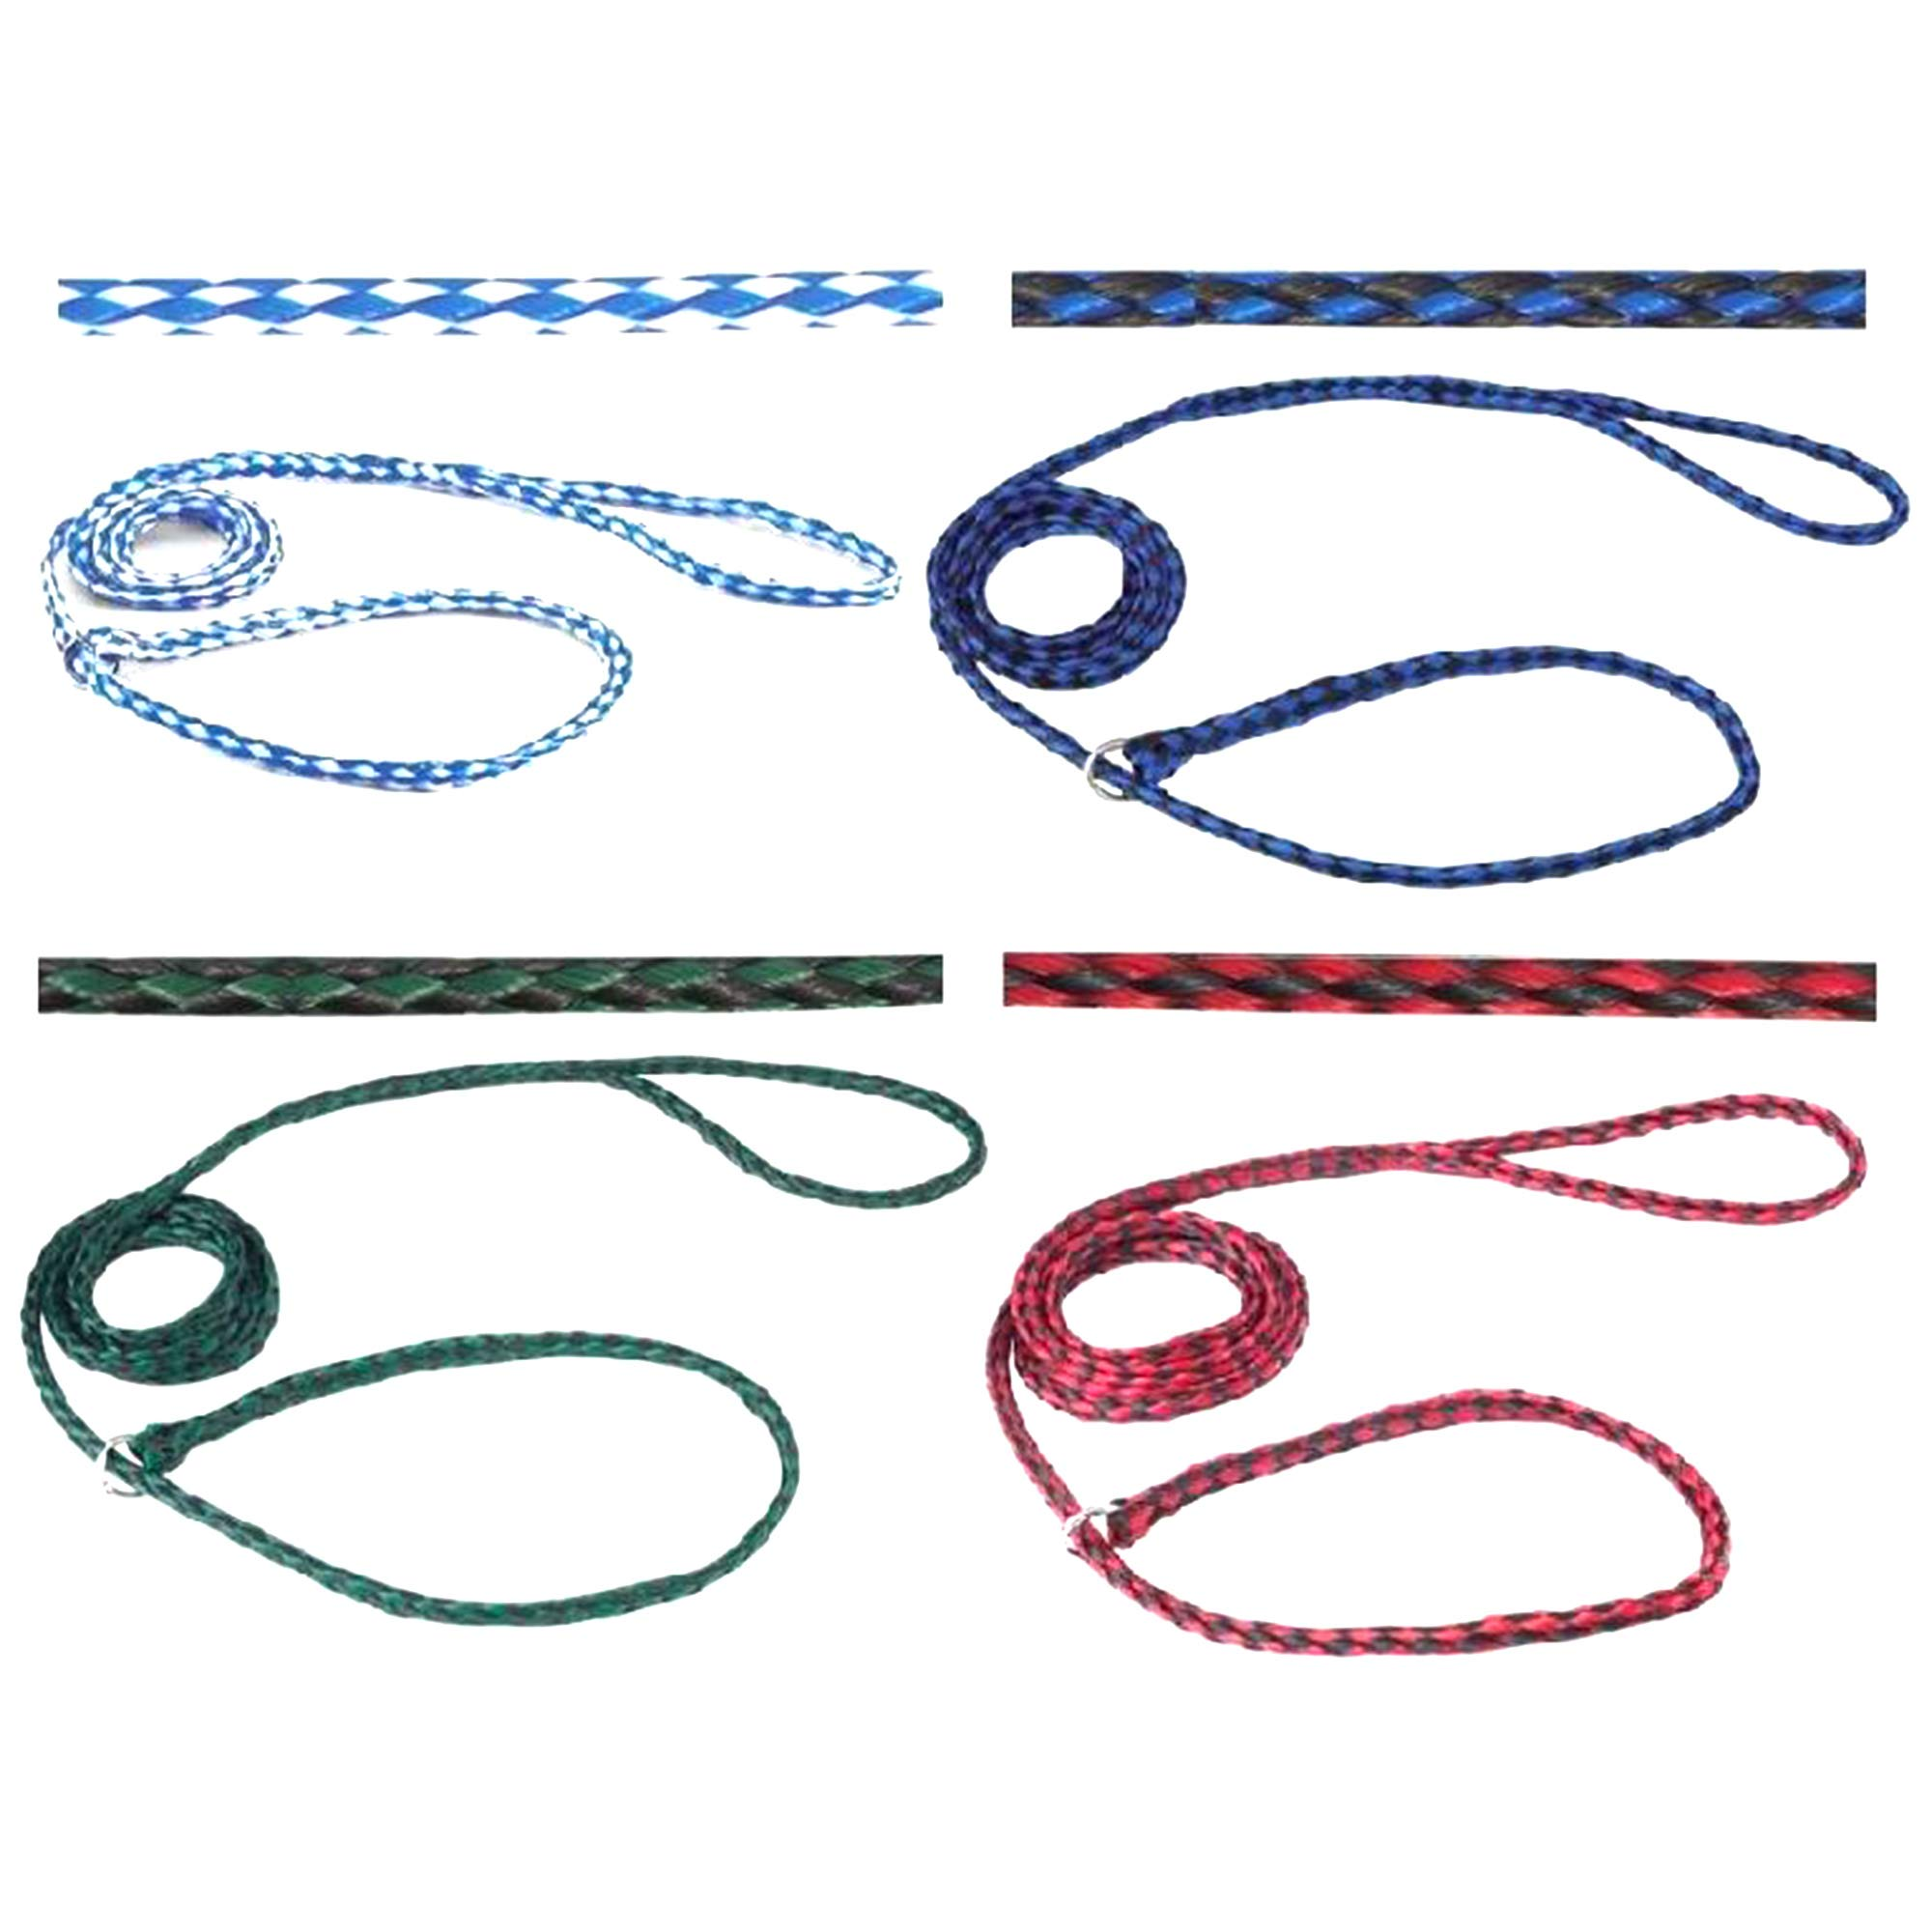 Durable Braided Poly Slip Leads, Animal Control Kennel 5 FT Slip Leads, Strong Leashes Dogs, Grooming, Shelter, Rescues, Vet, Veterinarian, Doggy Daycare Pet Training (48 Pack) by Downtown Pet Supply (Image #2)